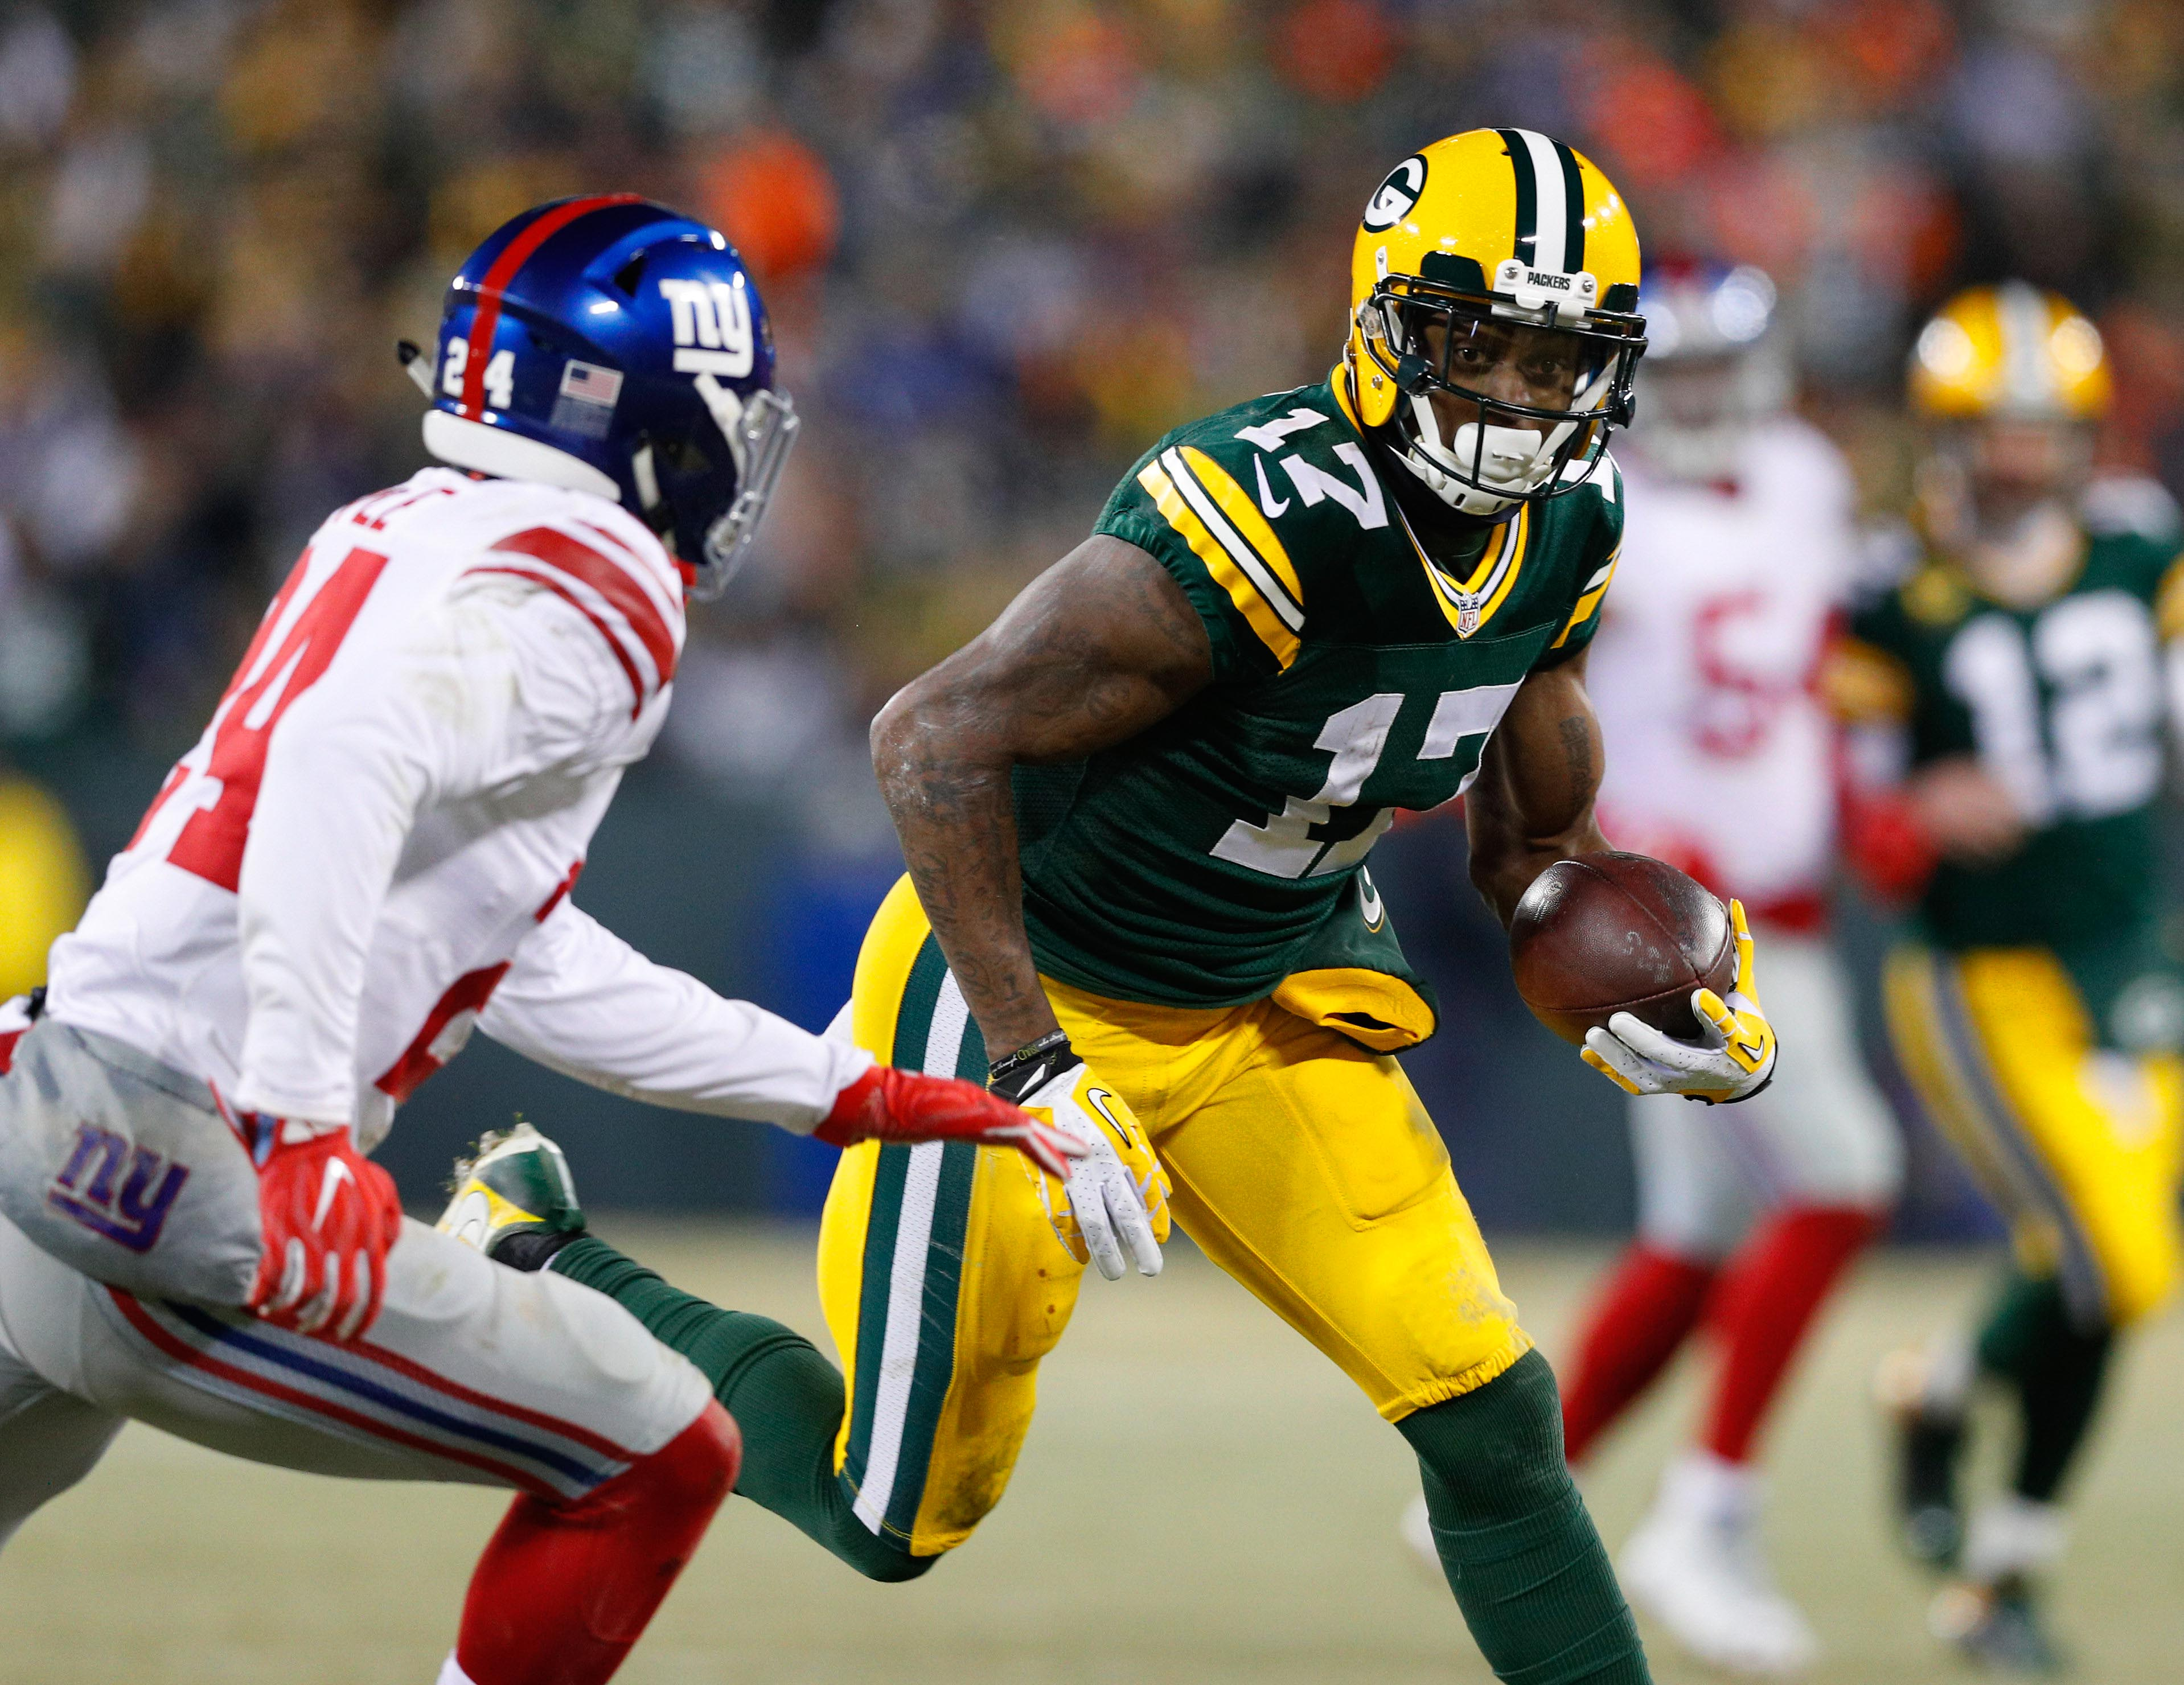 NFL: NFC Wild Card-New York Giants at Green Bay Packers